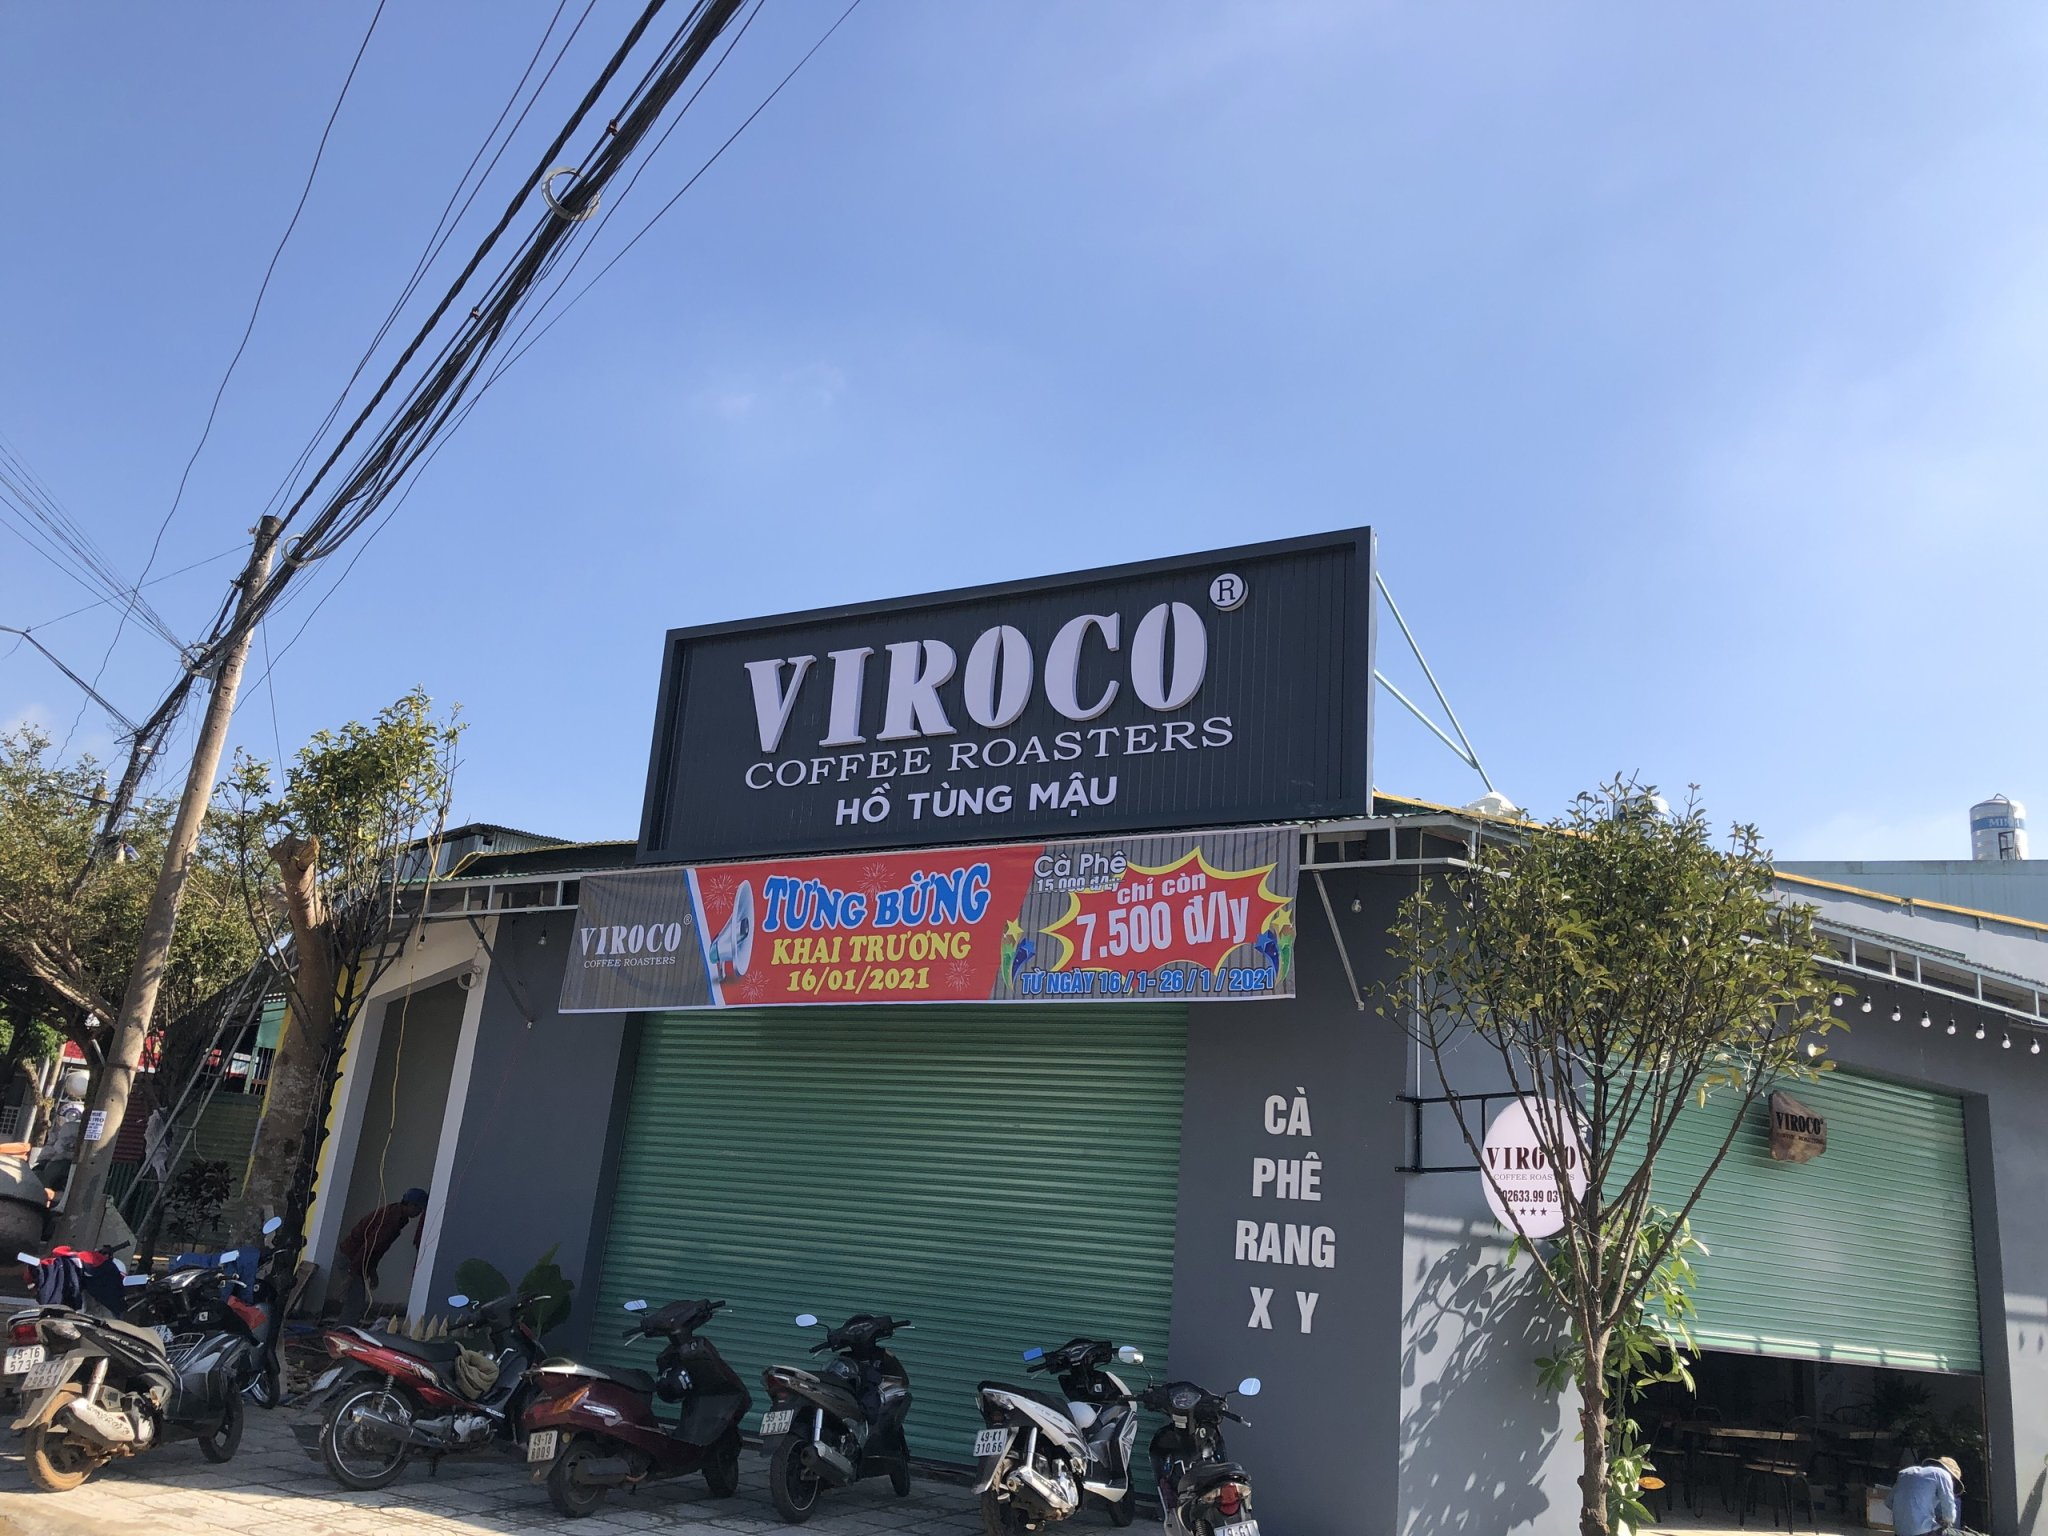 Viroco Coffee